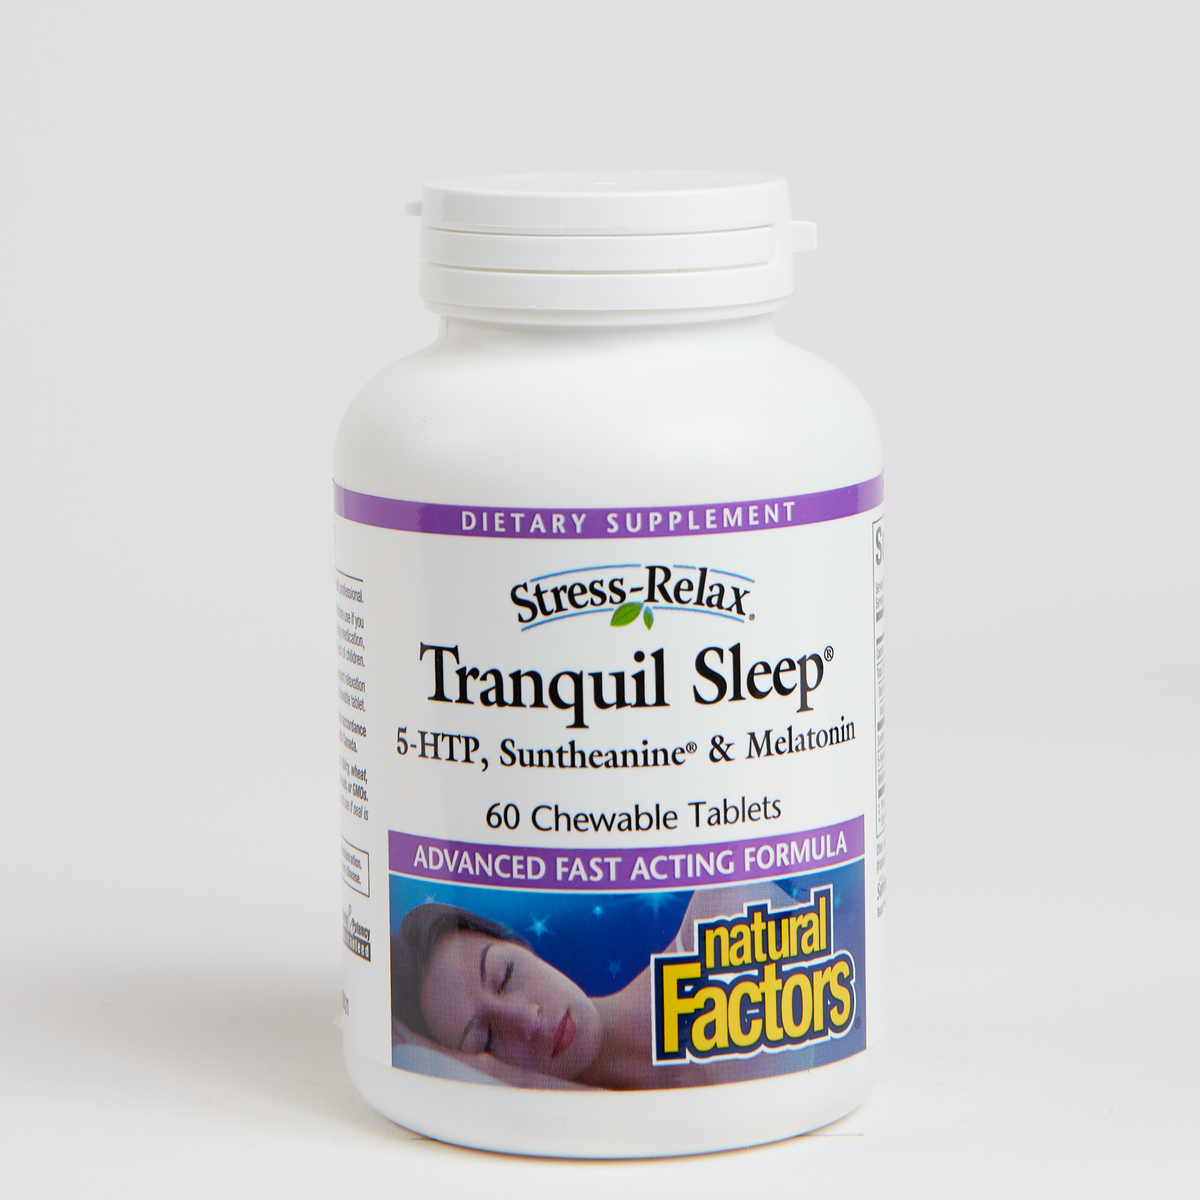 Natural Factors Tranquil Sleep Chewable Stress - Relief - 60 Count